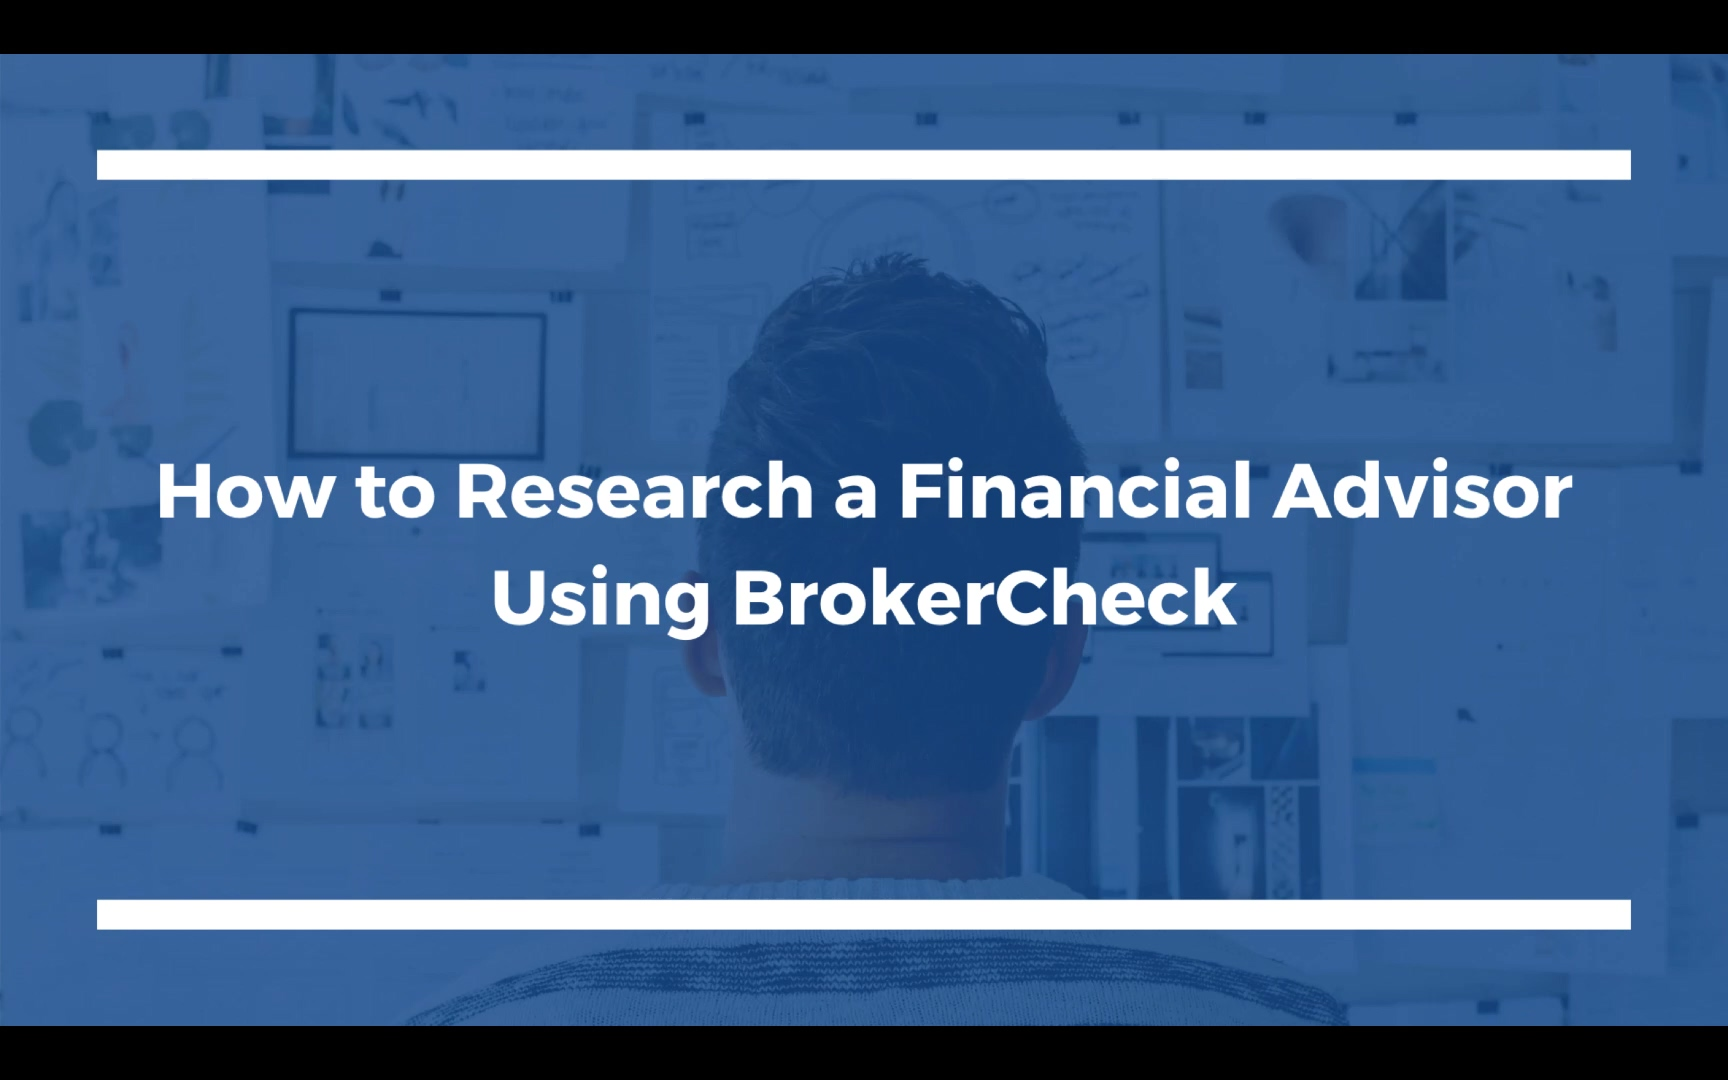 Video - BrokerCheck Video - How to Research a Financial Advisor Using BrokerCheck Tutorial Video - M